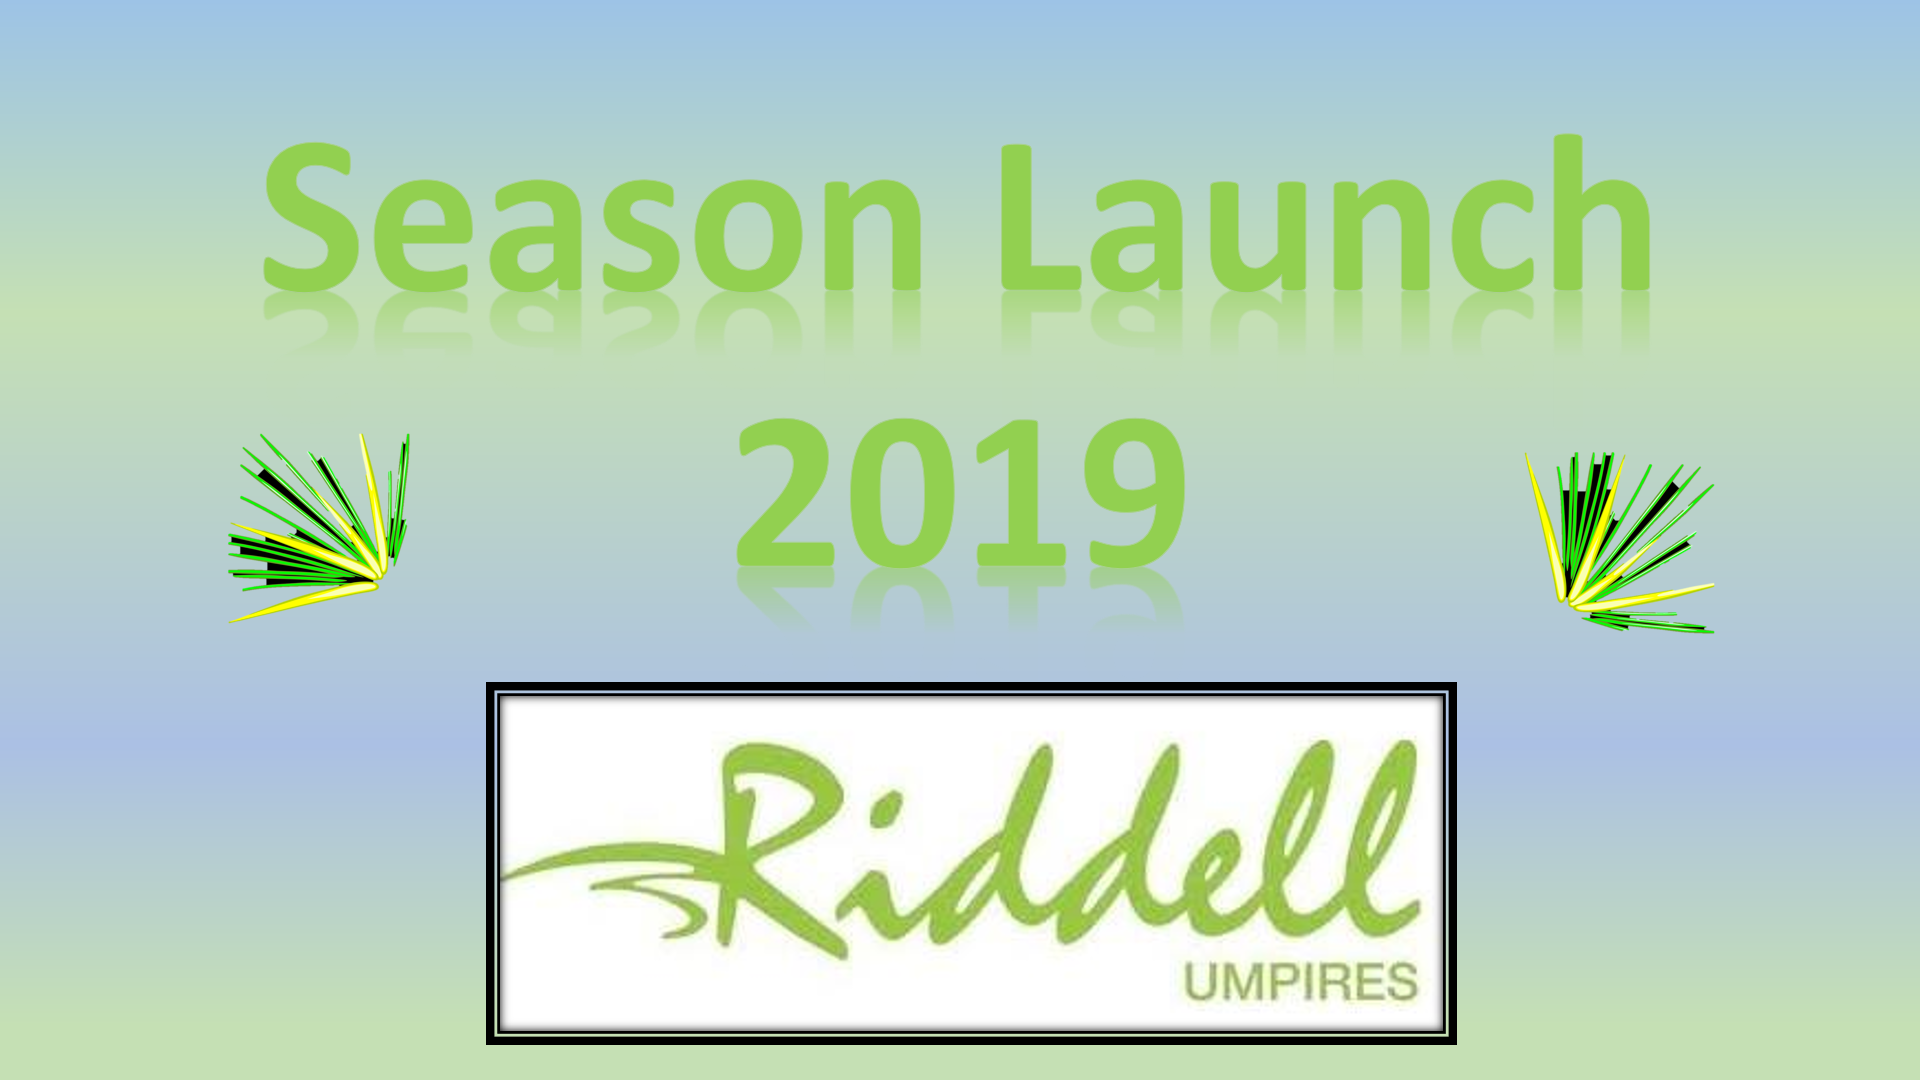 Season Launch